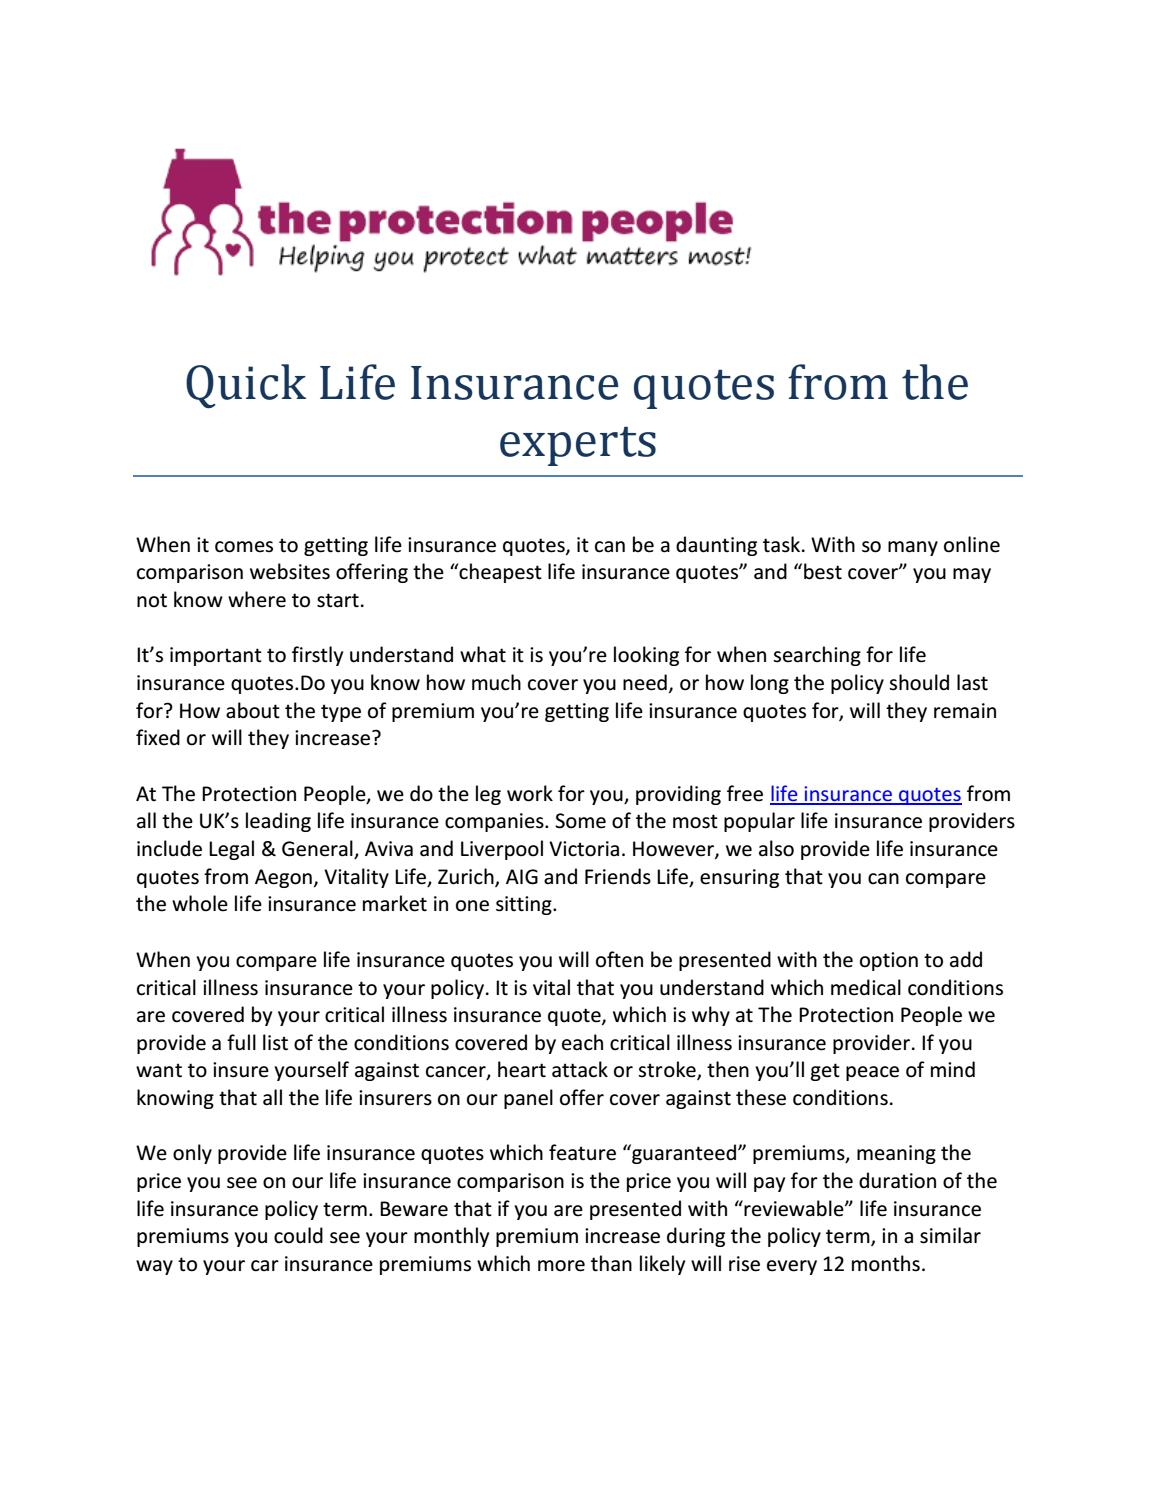 Quotes Life Insurance The Protection People  Quick Life Insurance Quotes From The